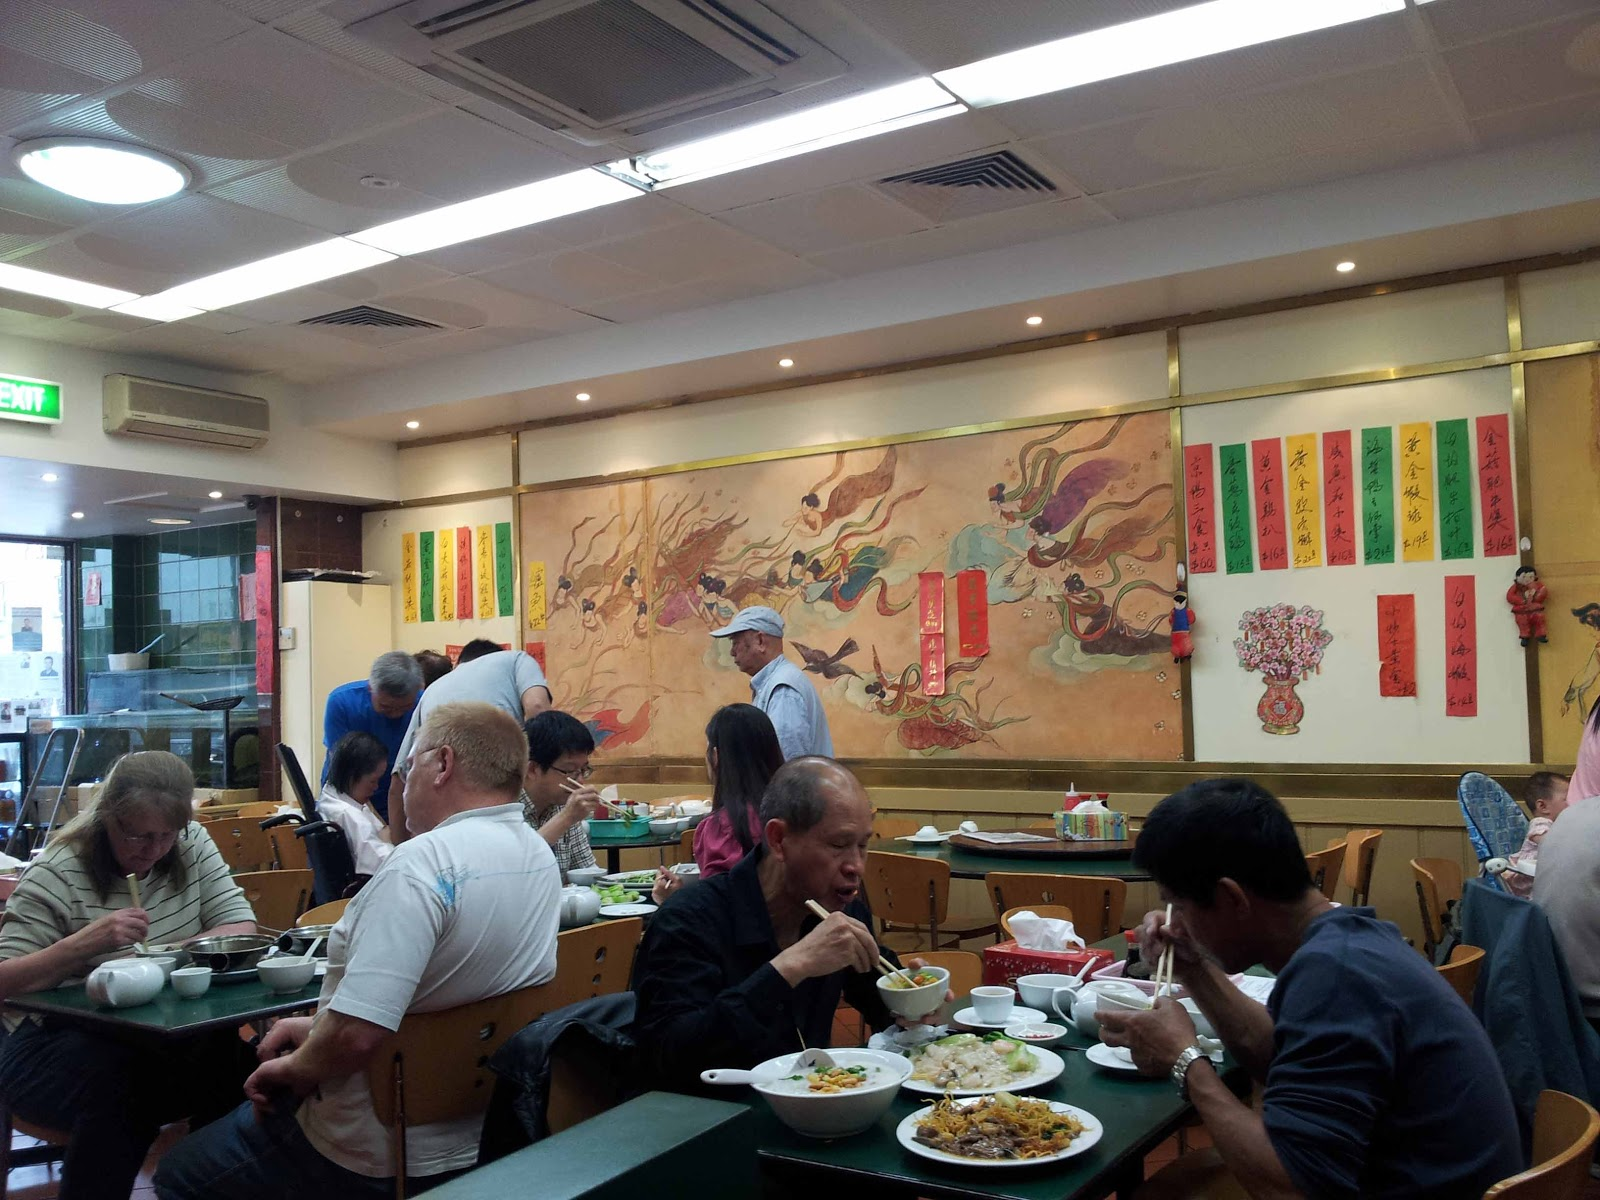 Busy Chinese restaurant